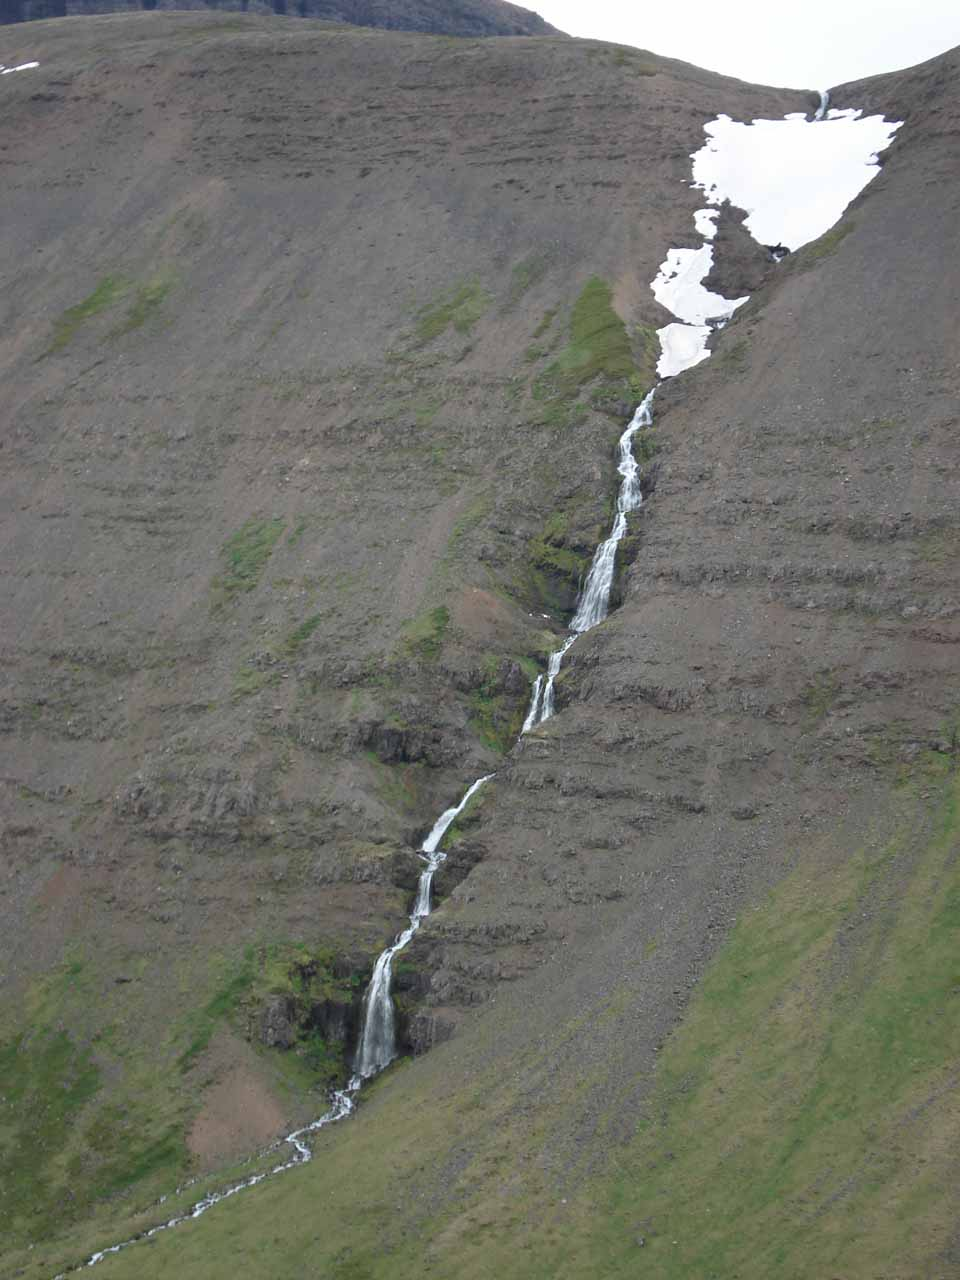 When we left the tunnel, we noticed this tall cascade spilling into Tungudalur